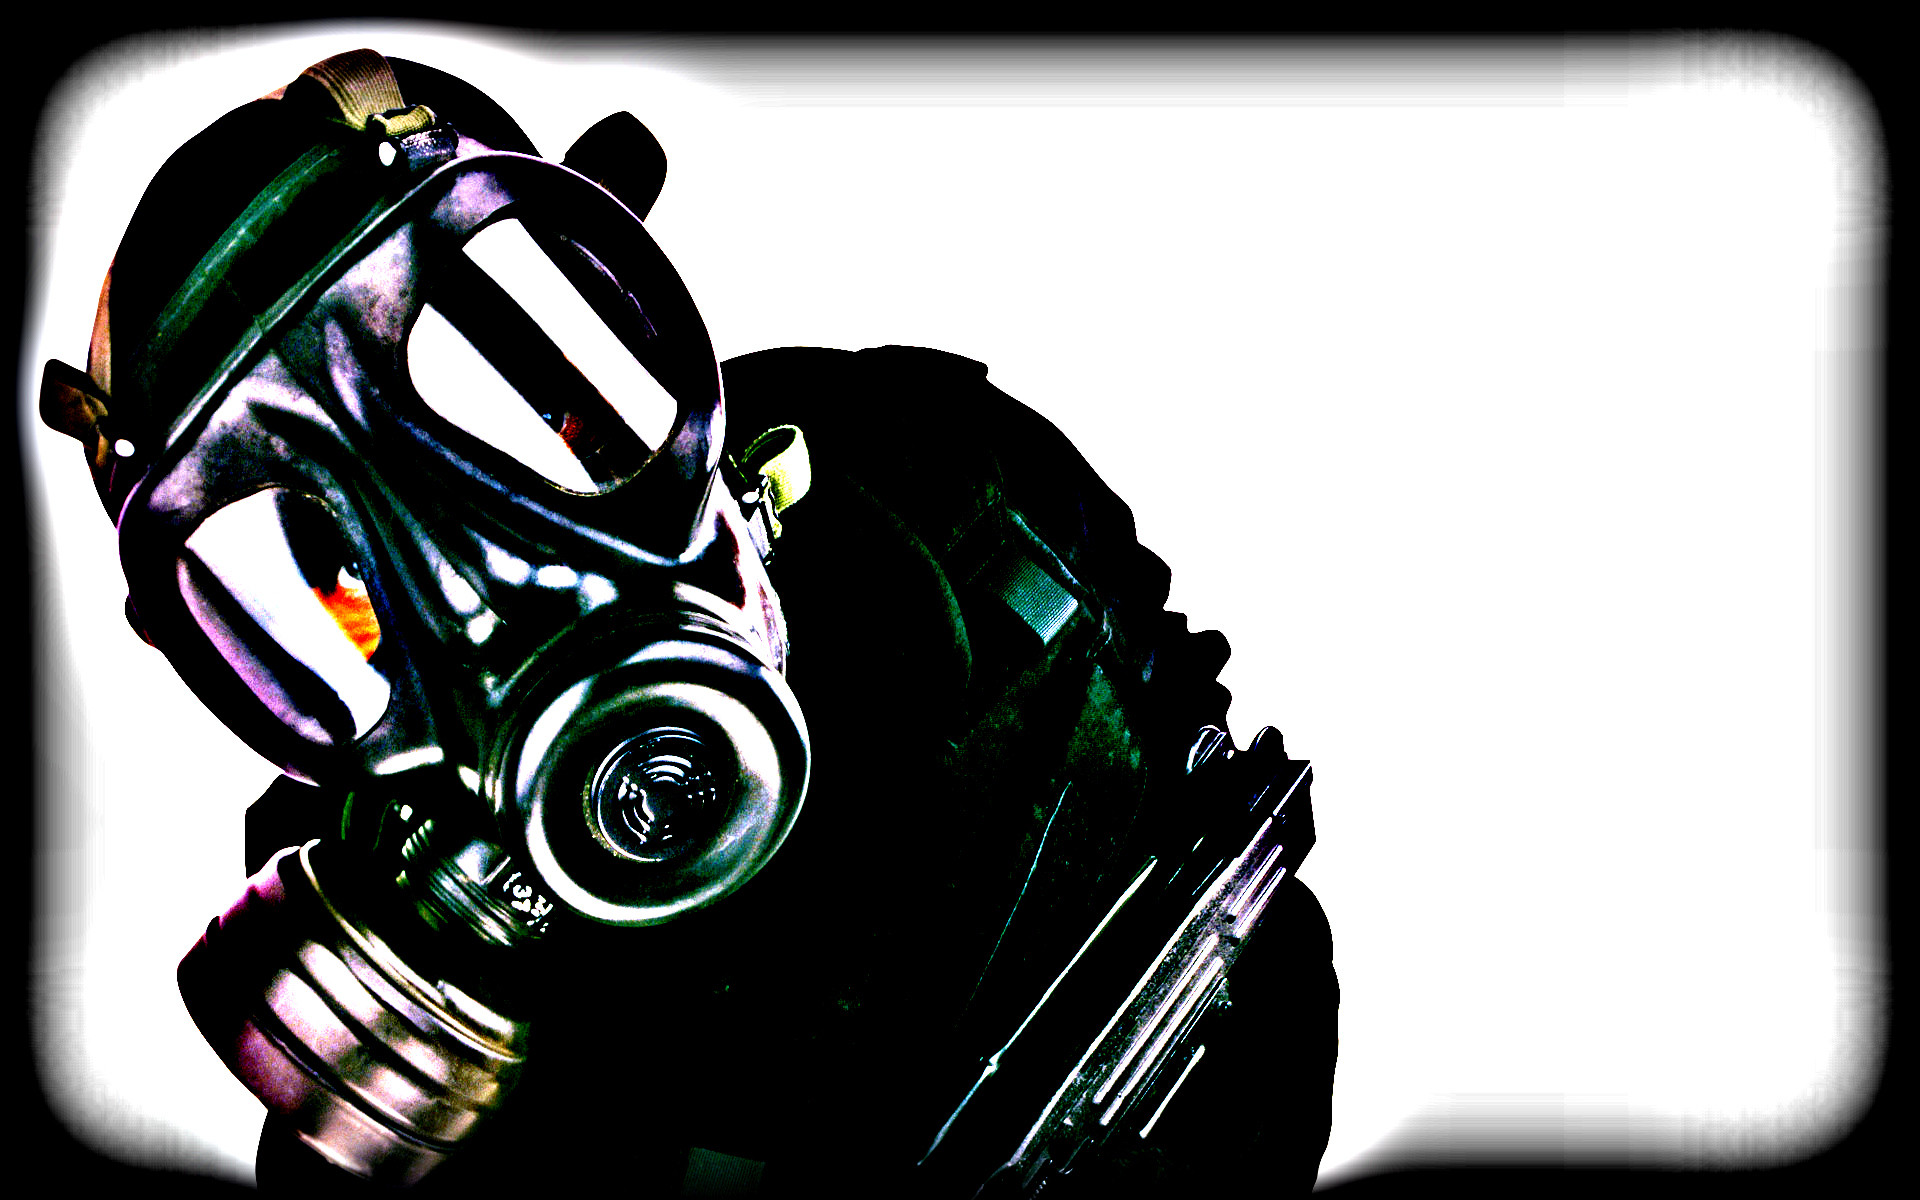 1920x1200 Gas Mask Iphone Hd Wallpaper | Pelauts.Com